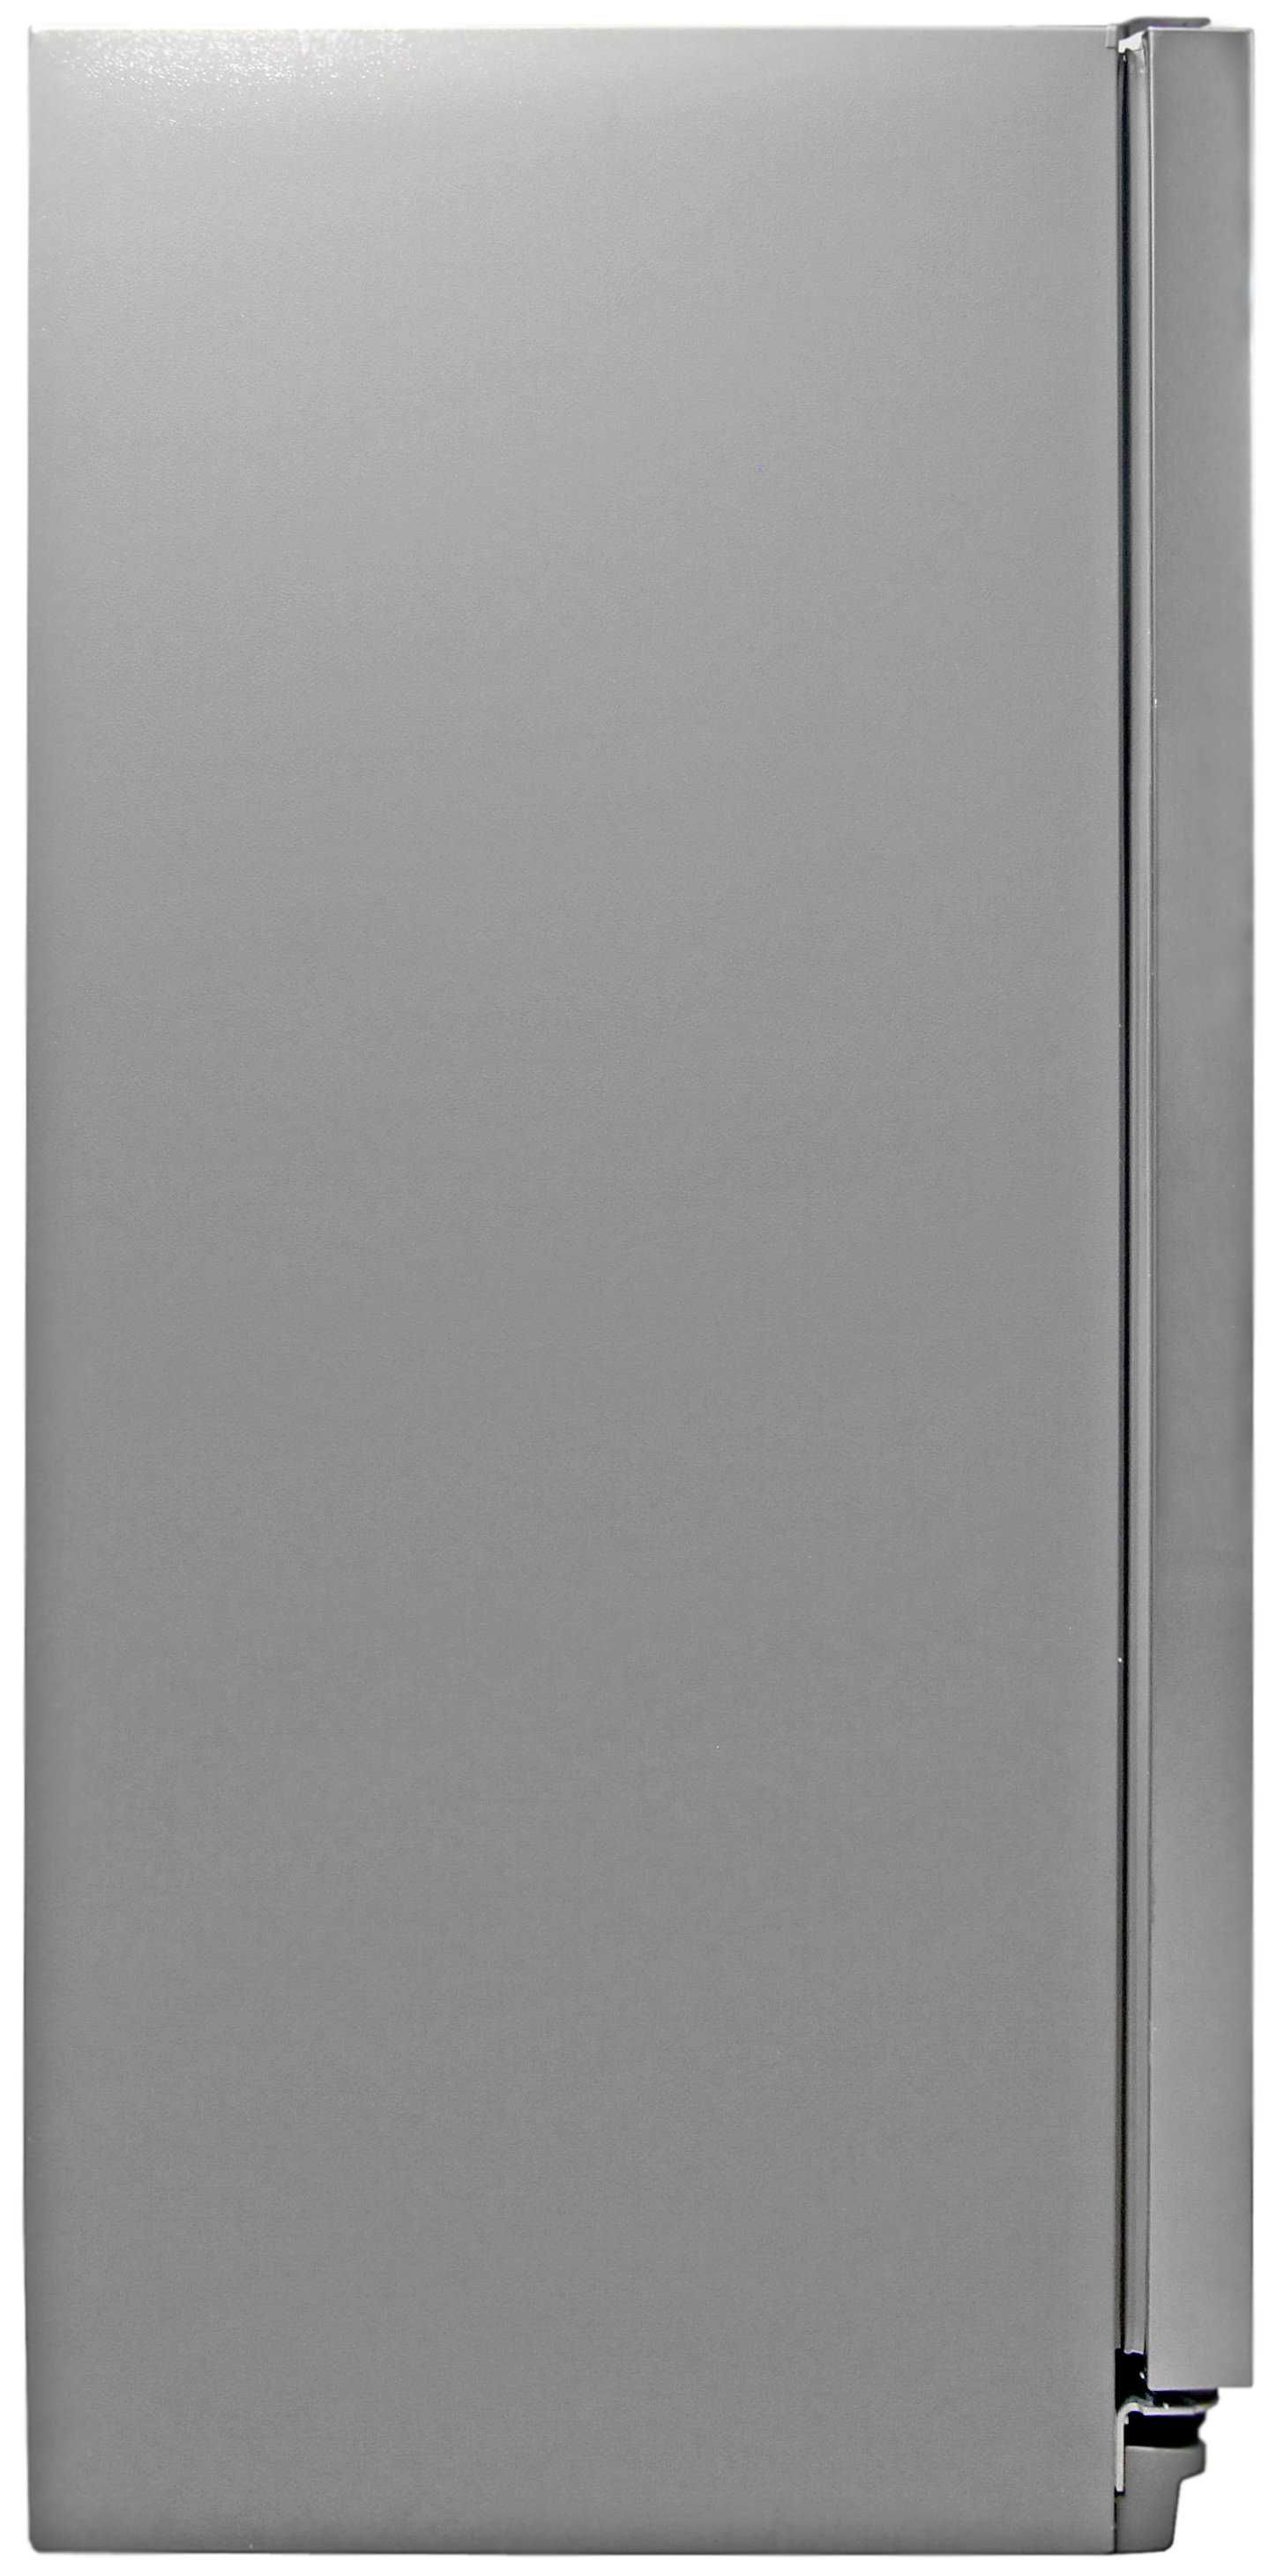 A standard grey matte finish is found on the sides of the Whirlpool WRS325FDAM.